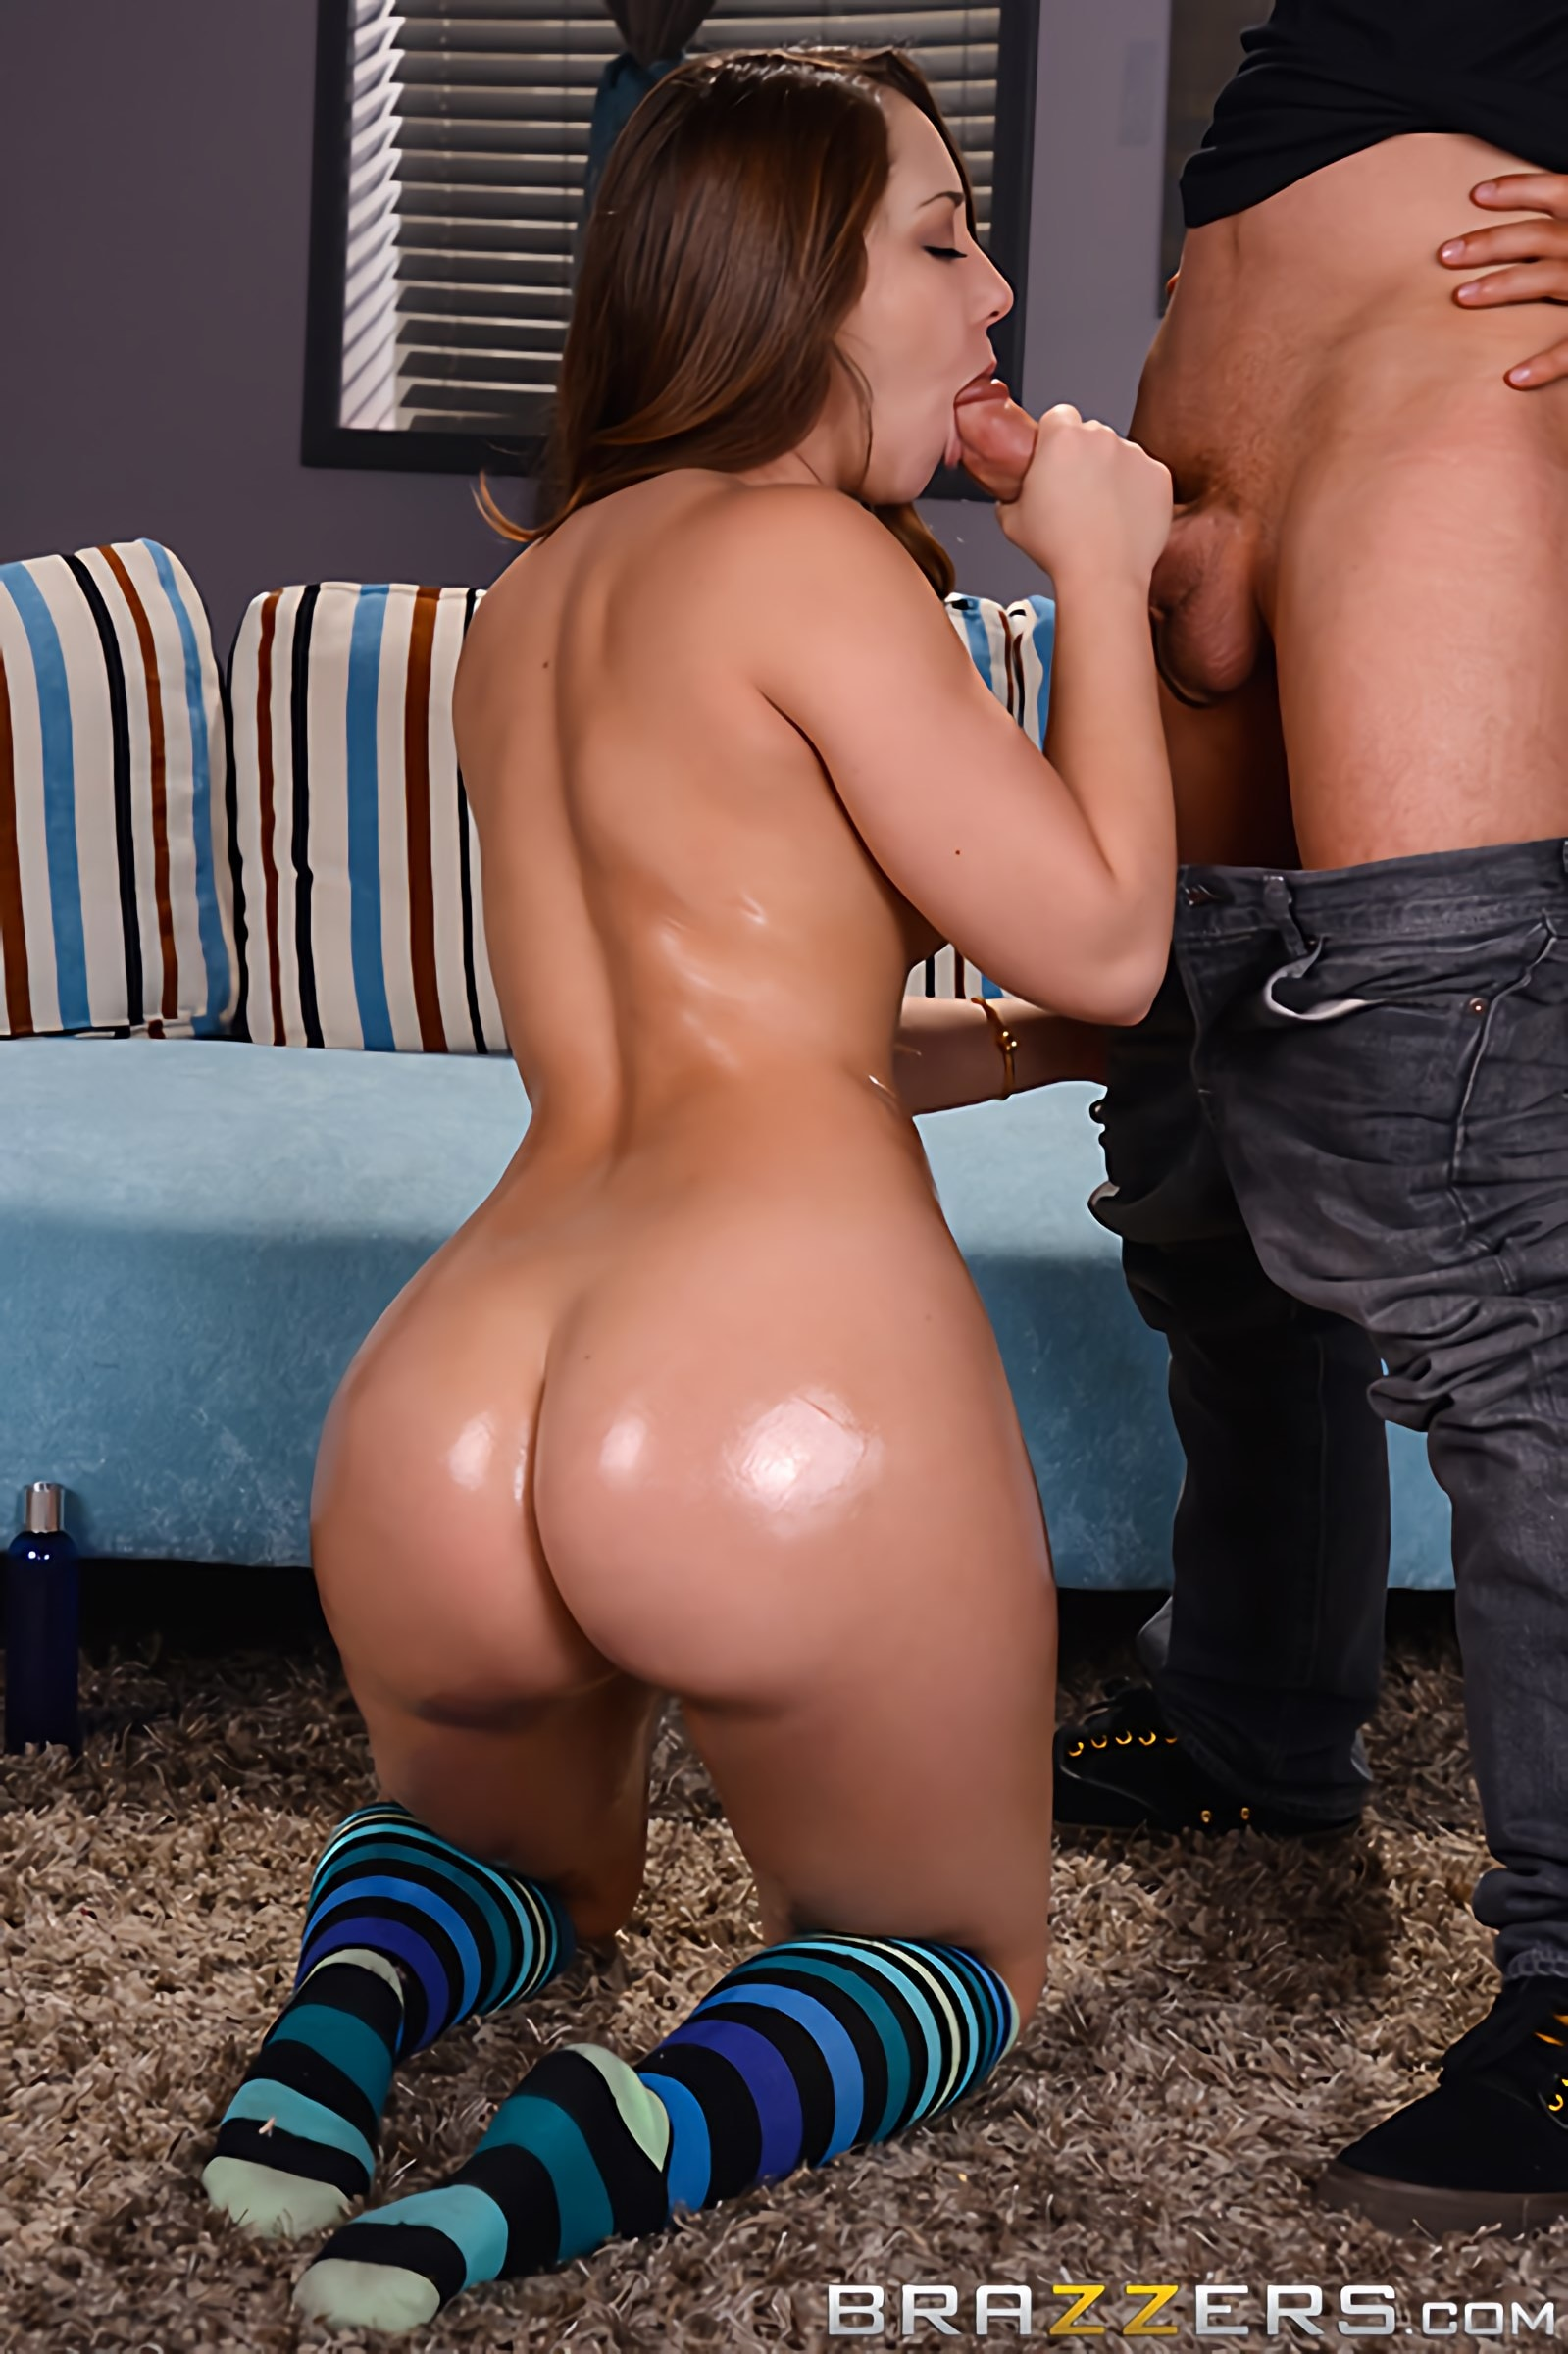 Brazzers 'Sock It To Me' starring Remy LaCroix (Photo 8)